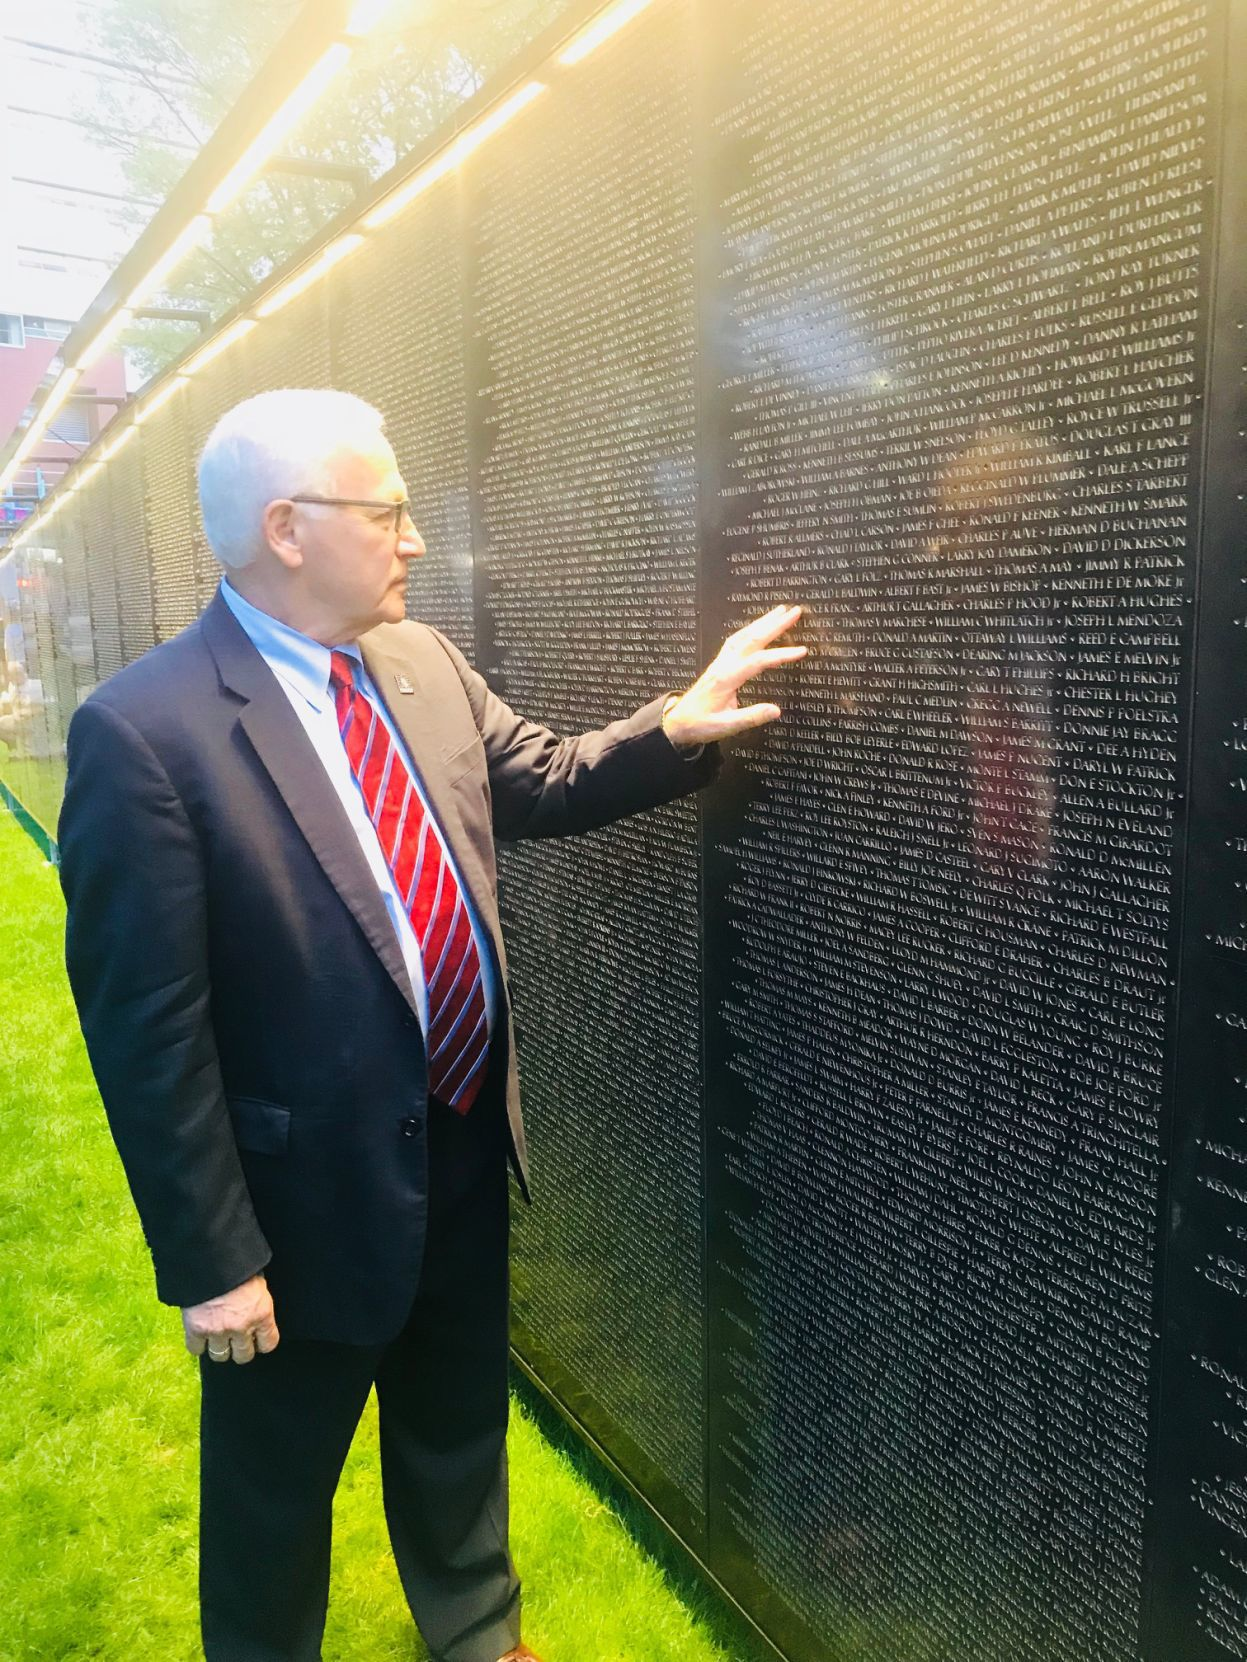 Gene Yaw Reflects At The Wall That Heals, A Half Scale Replica Of The Vietnam  Veterans Memorial In Washington, D.C. Designed To Travel To Communities ...